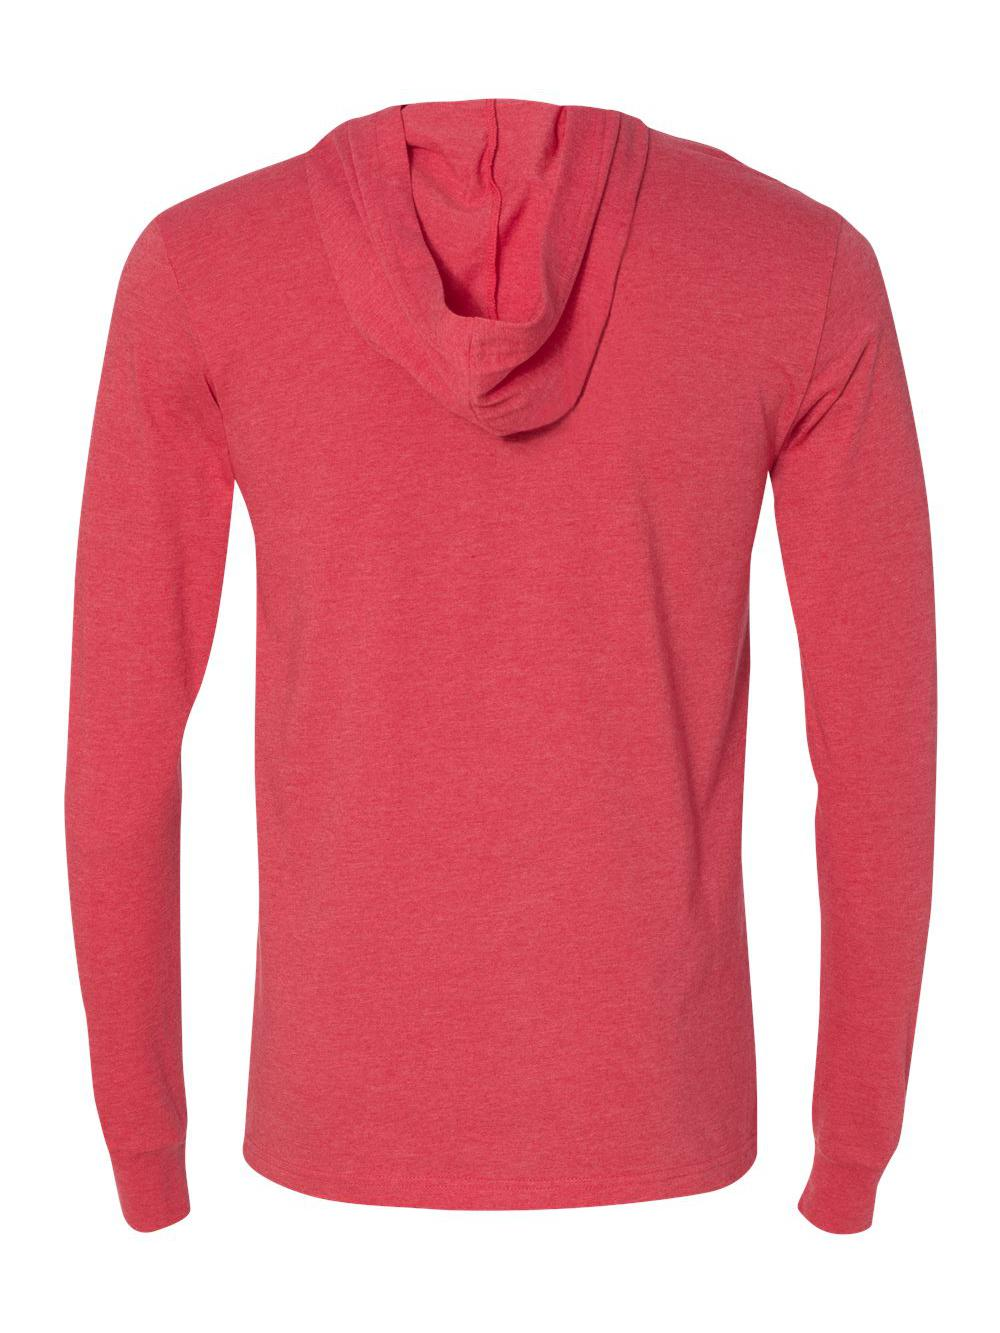 Bella-Canvas-Unisex-Long-Sleeve-Jersey-Hooded-Tee-3512 thumbnail 25